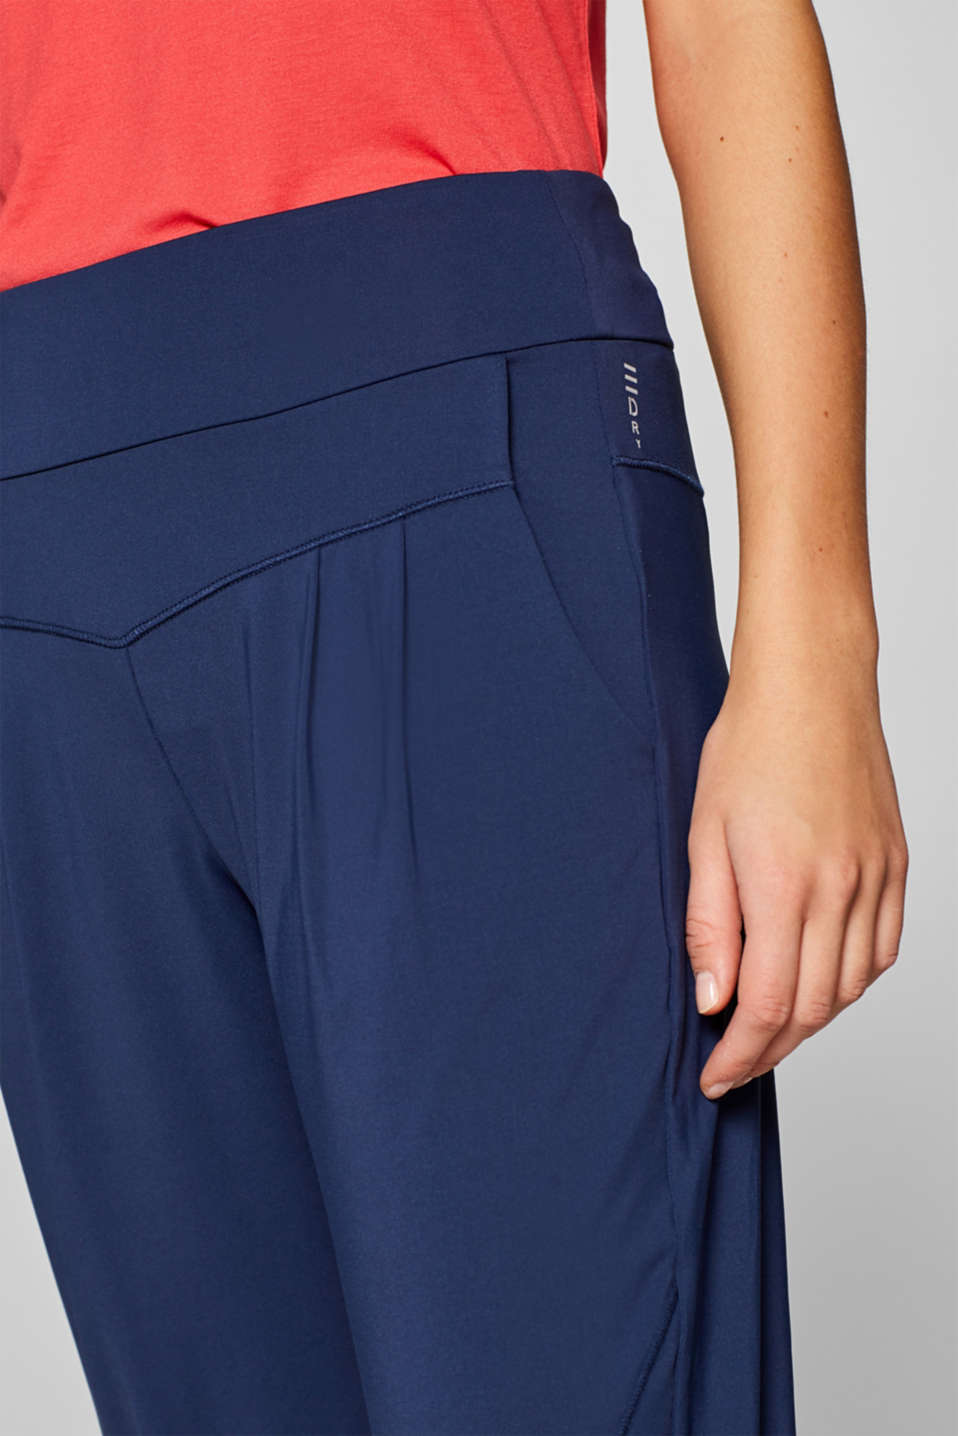 Loose active capris, E-DRY, NAVY, detail image number 5